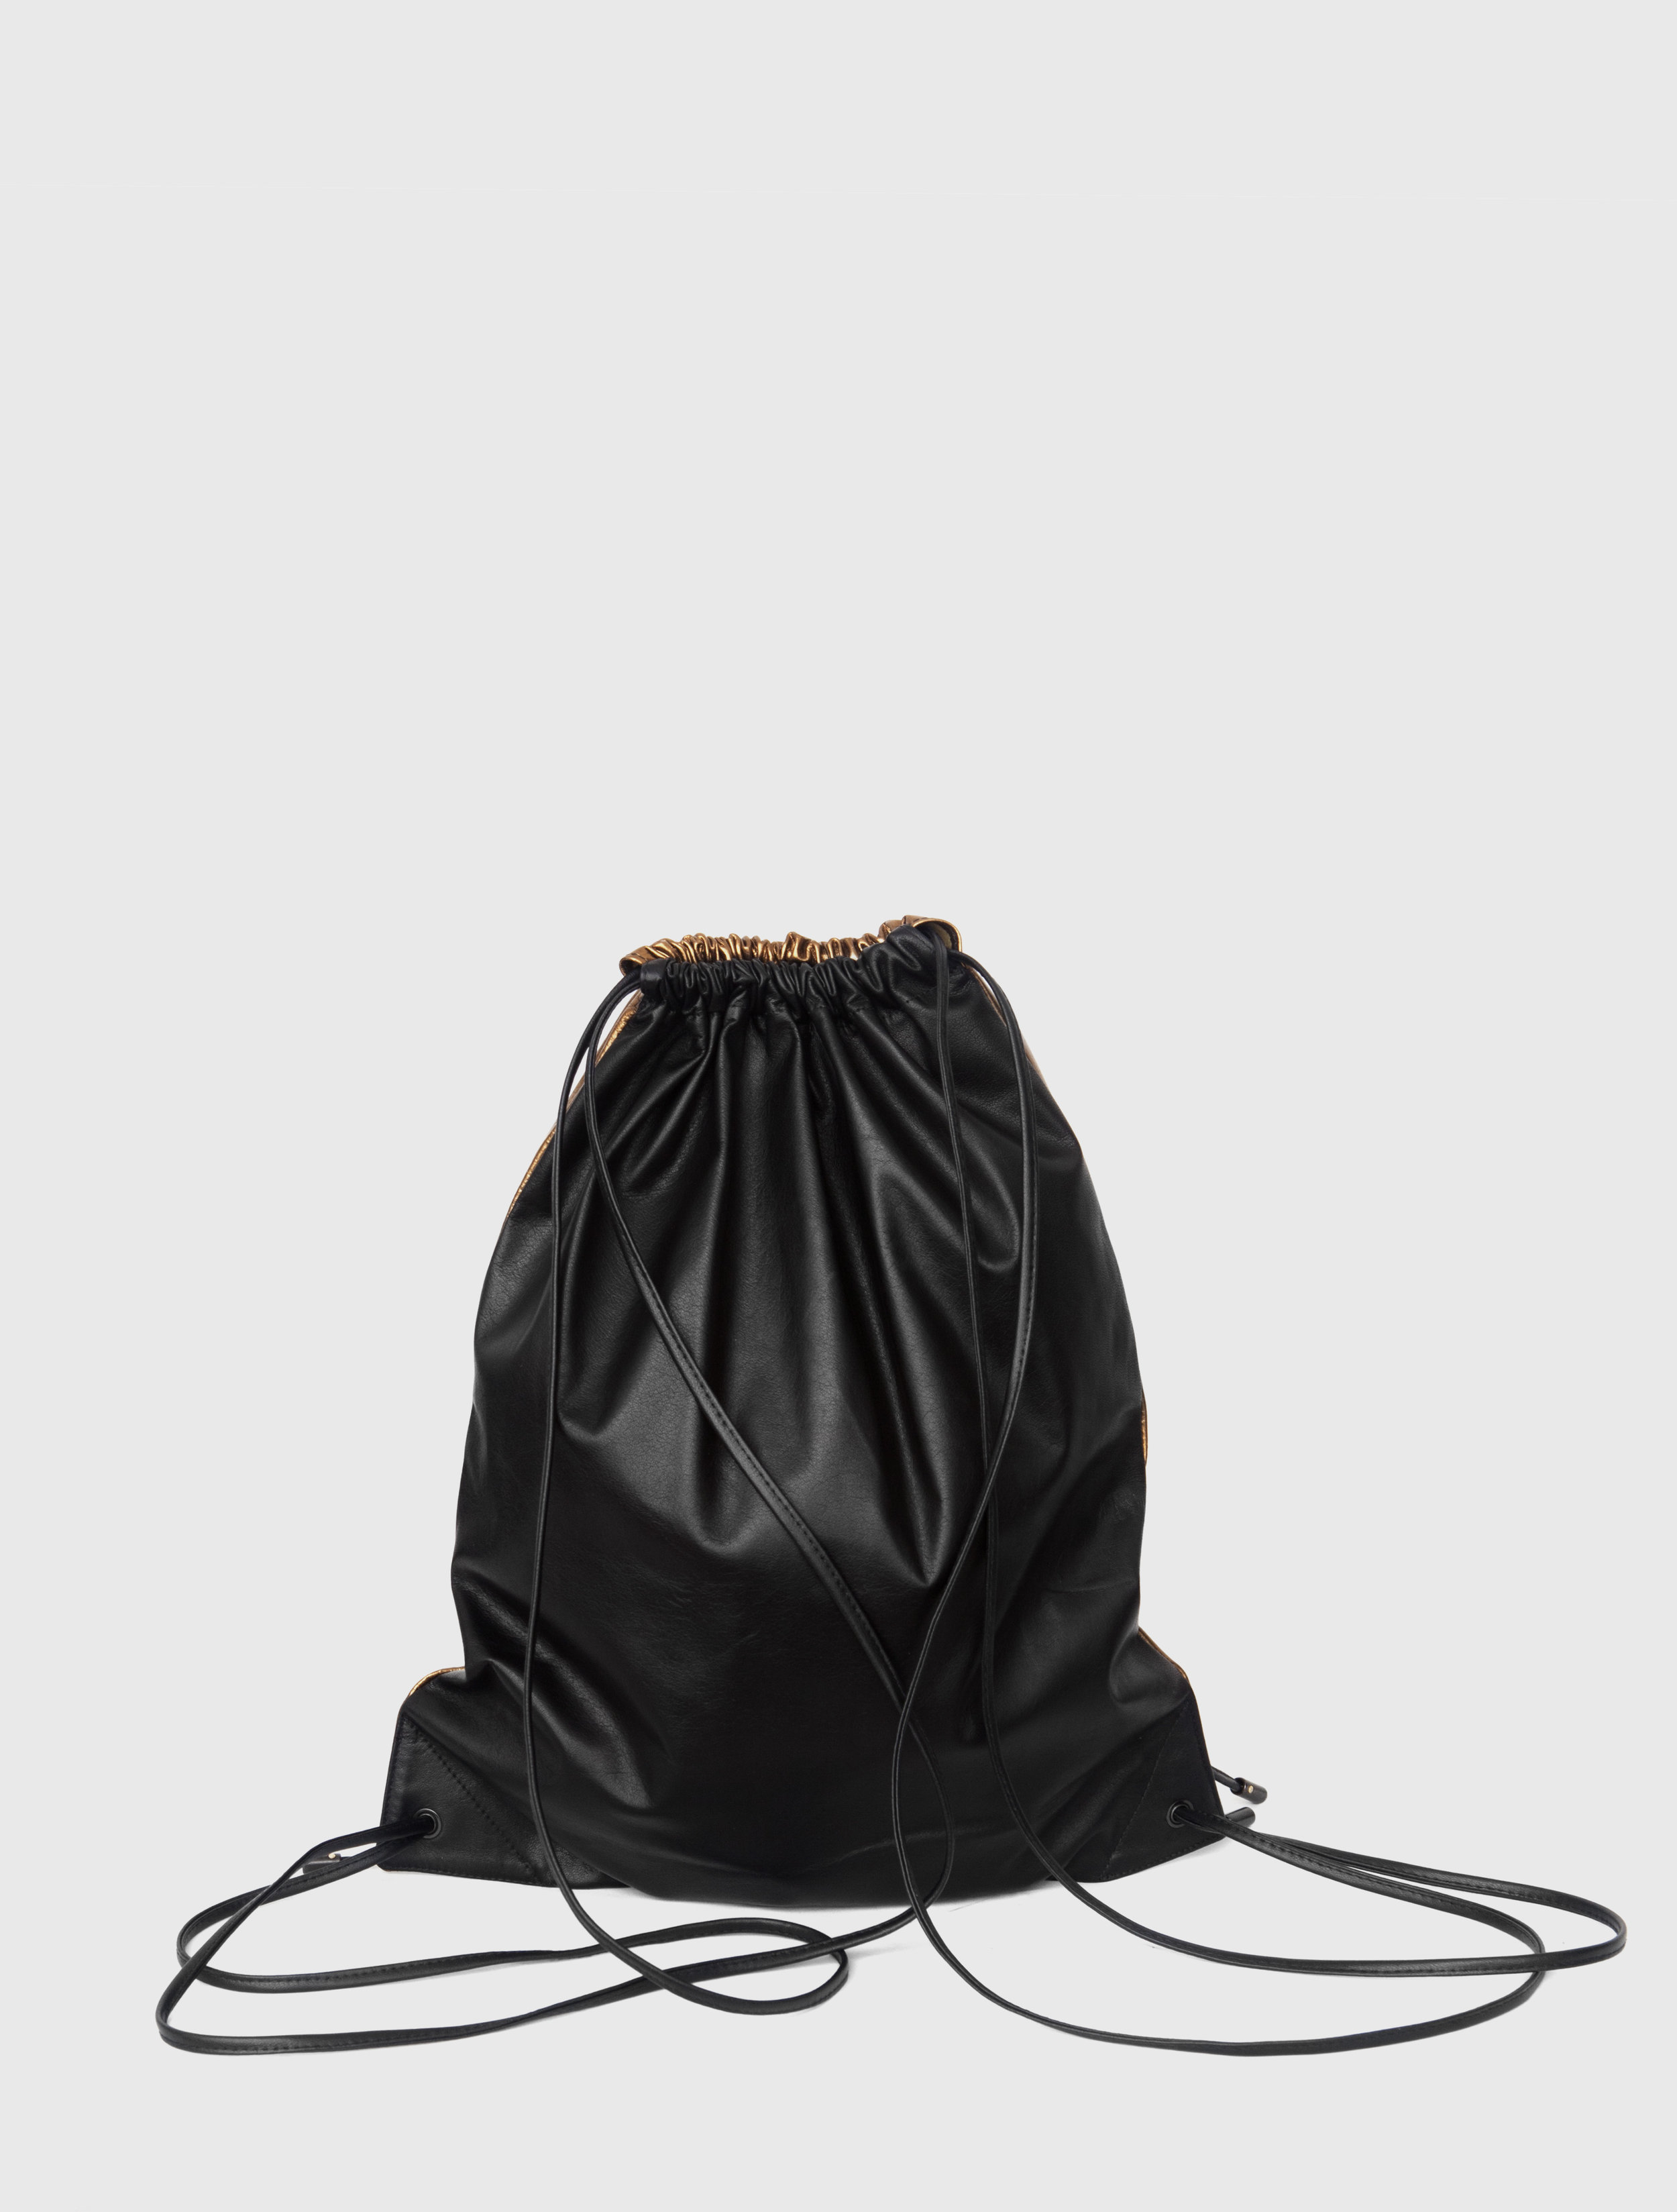 2015-16 DRAWSTRING MINI - BRONZE BACK.jpg